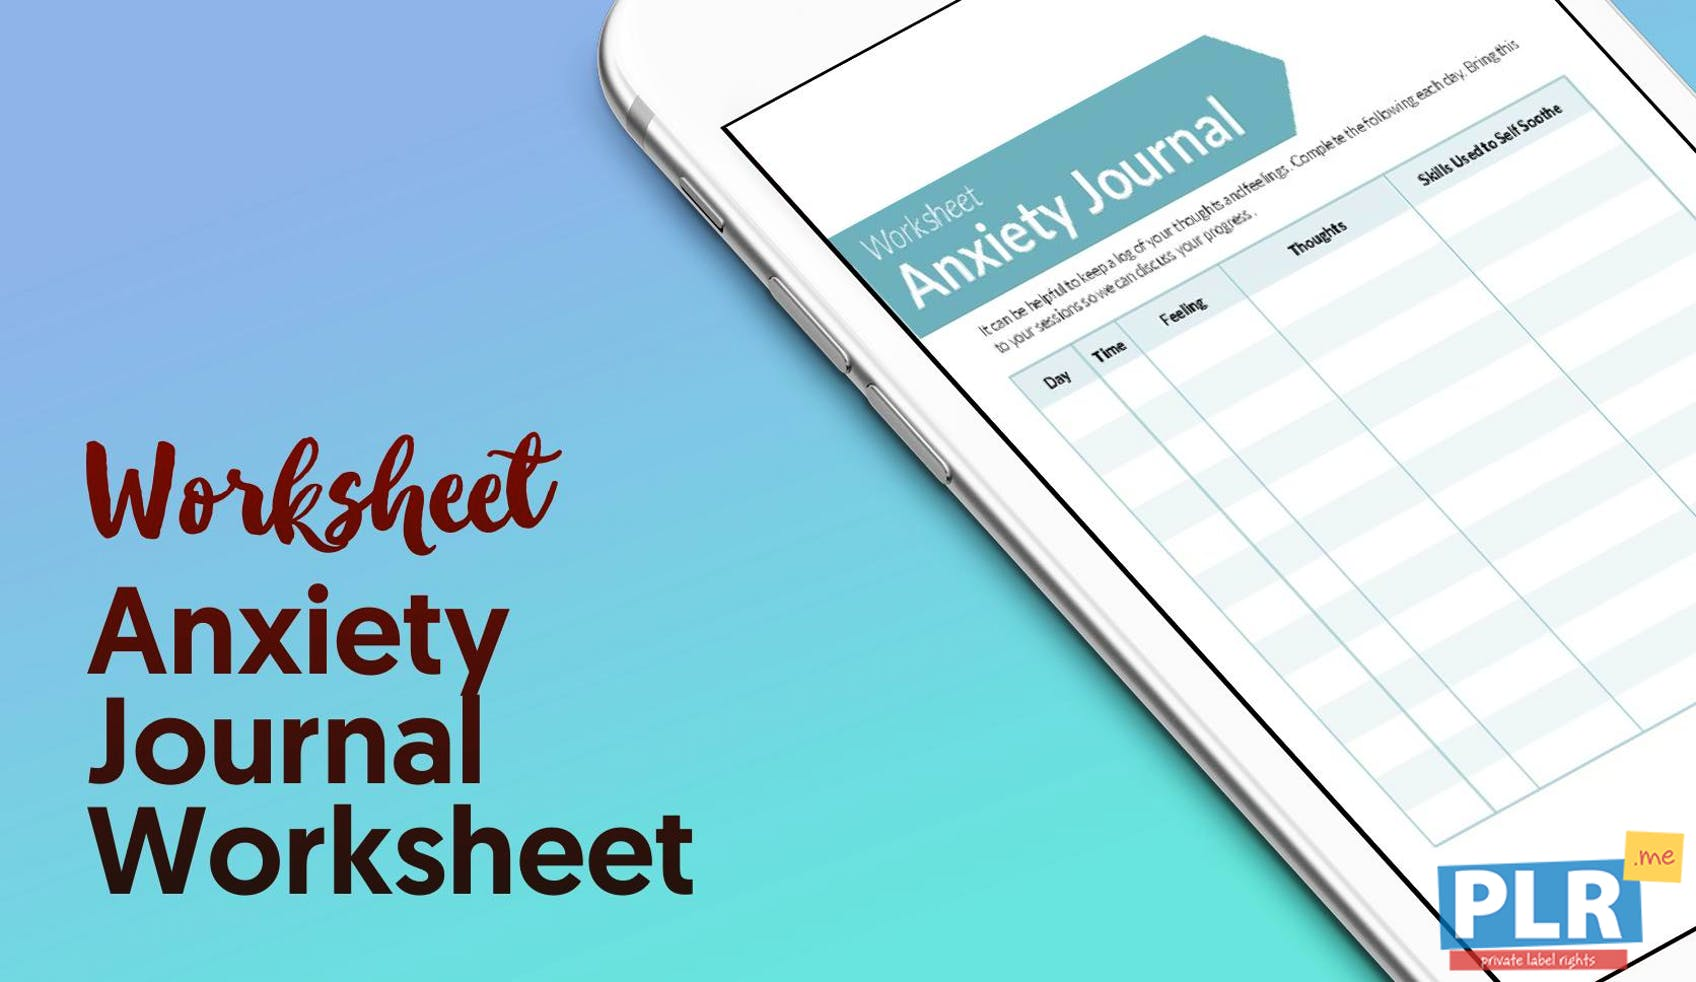 PLR Worksheets - Anxiety Journal Worksheet - PLR.me